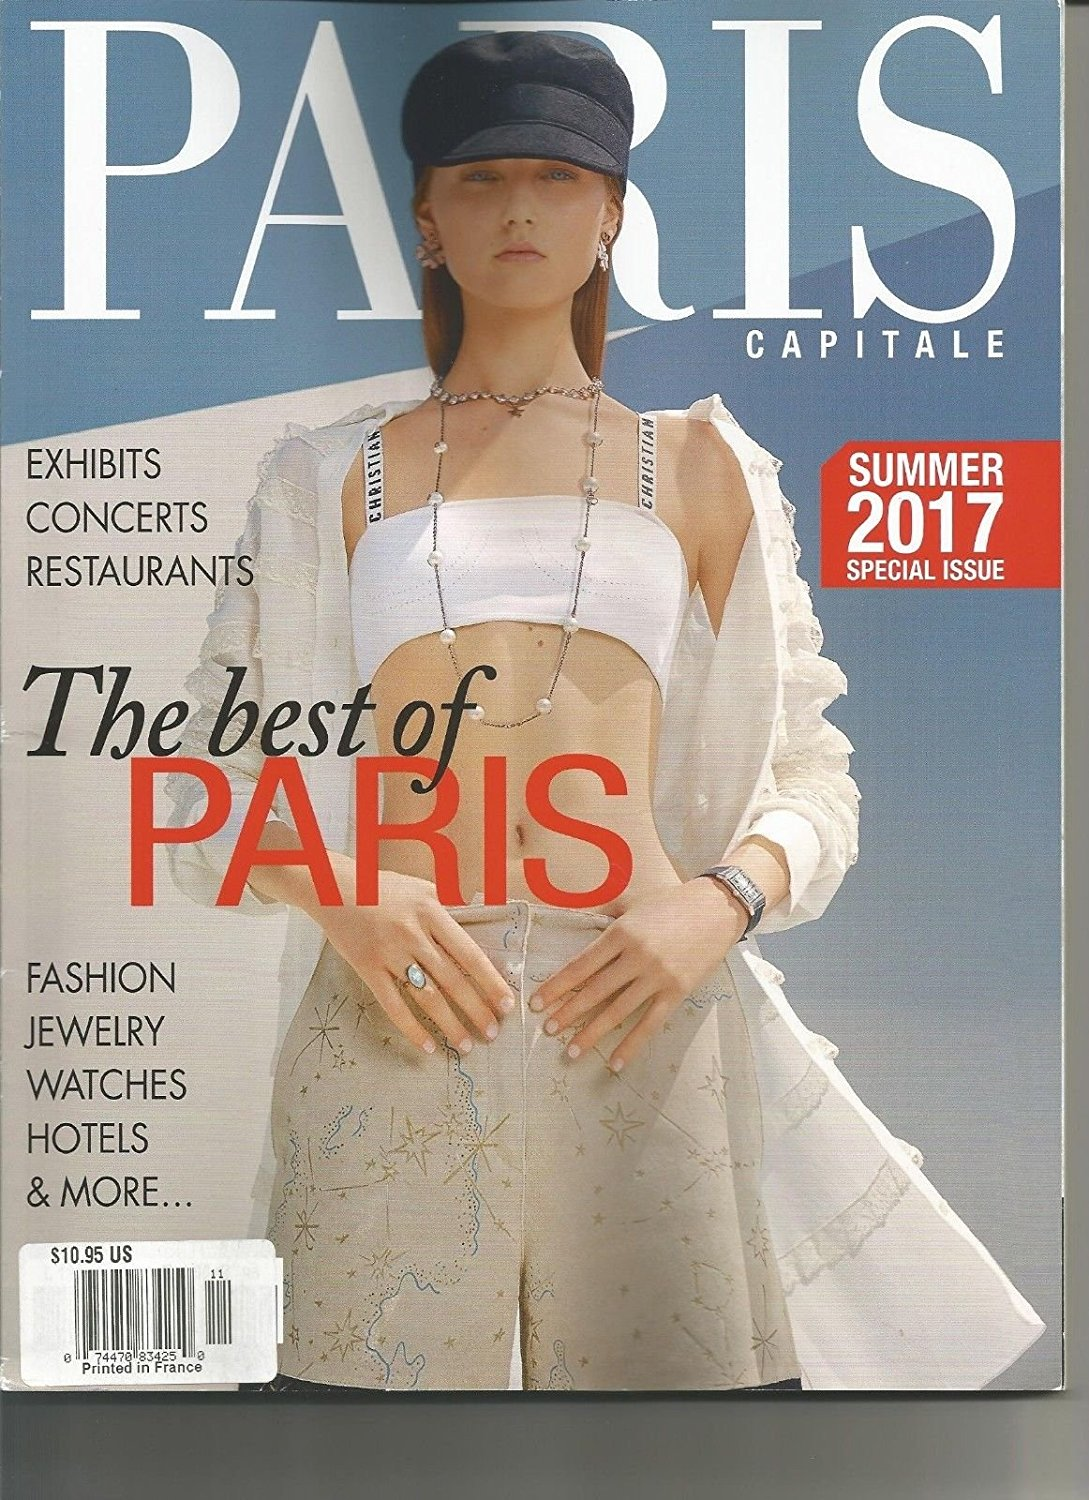 PARIS CAPITALE, SUMMER 2017 SPECIAL ISSUE, THE BEST OF PARIS